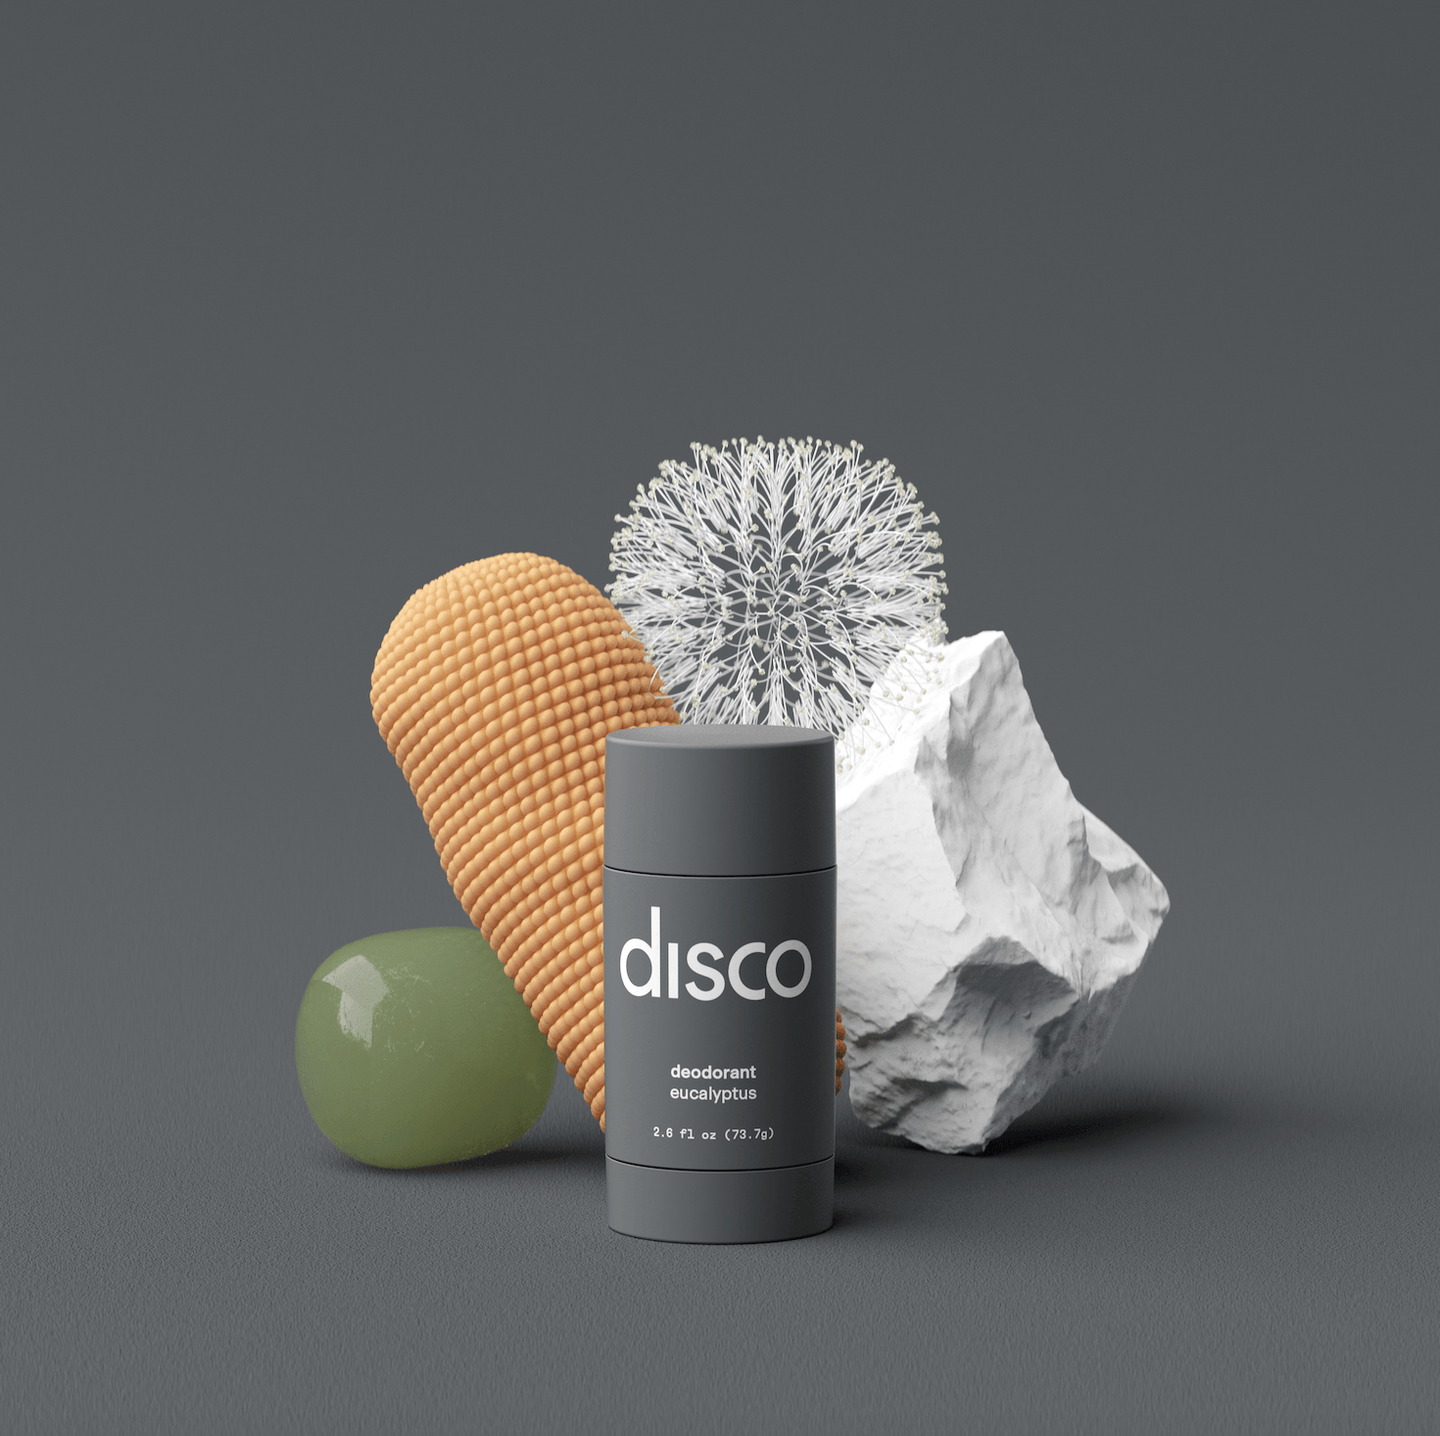 Deodorant / Neighborhood Goods